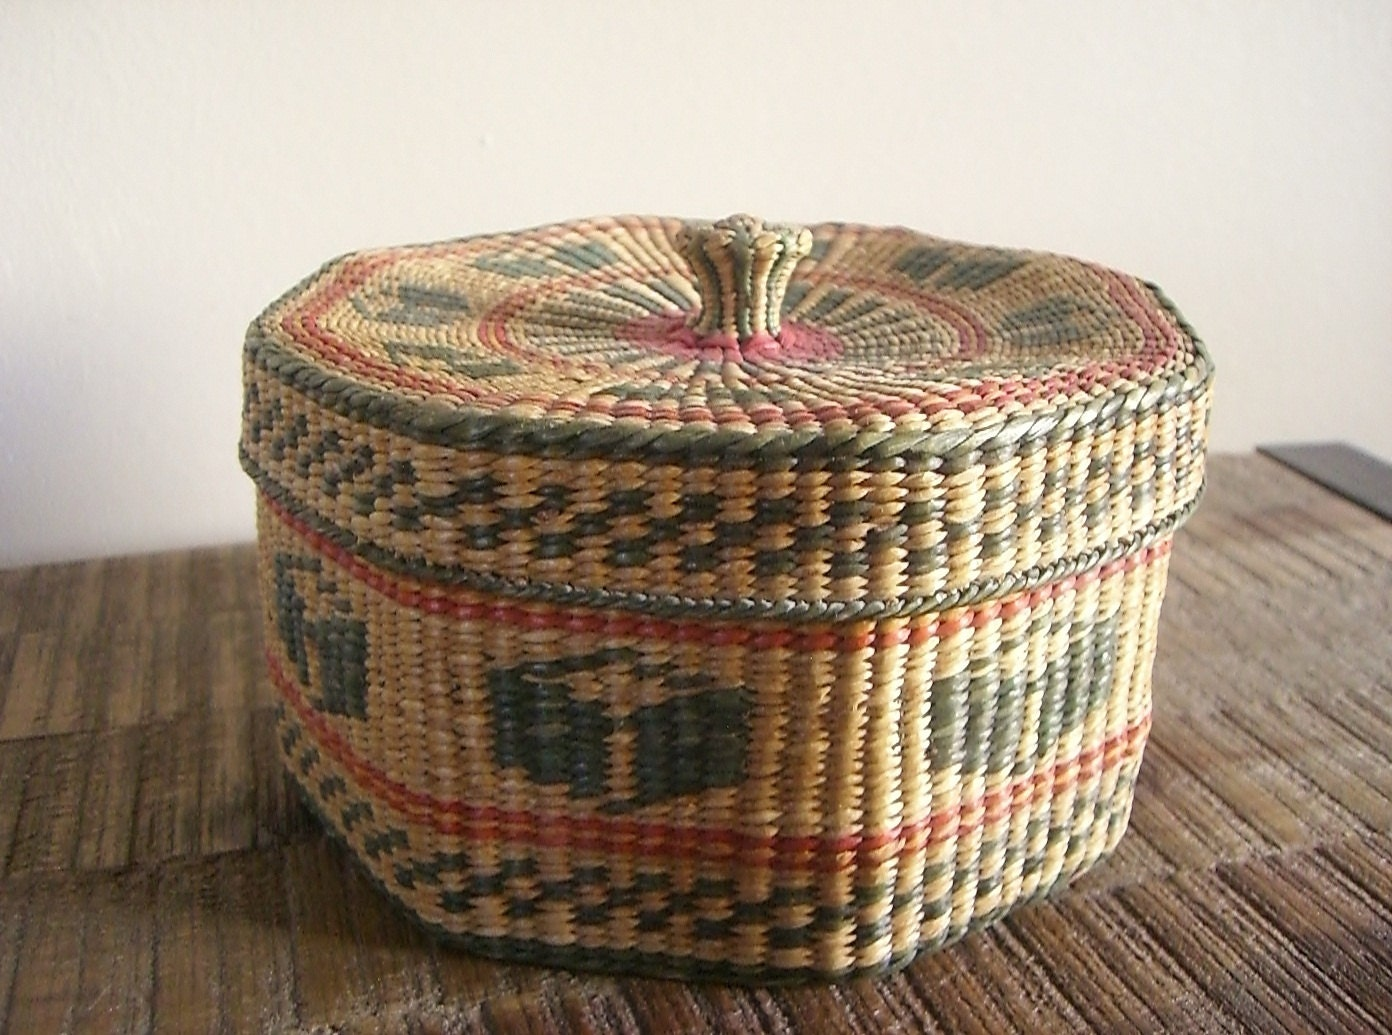 How To Weave A Sweetgrass Basket : Vintage woven sweetgrass basket